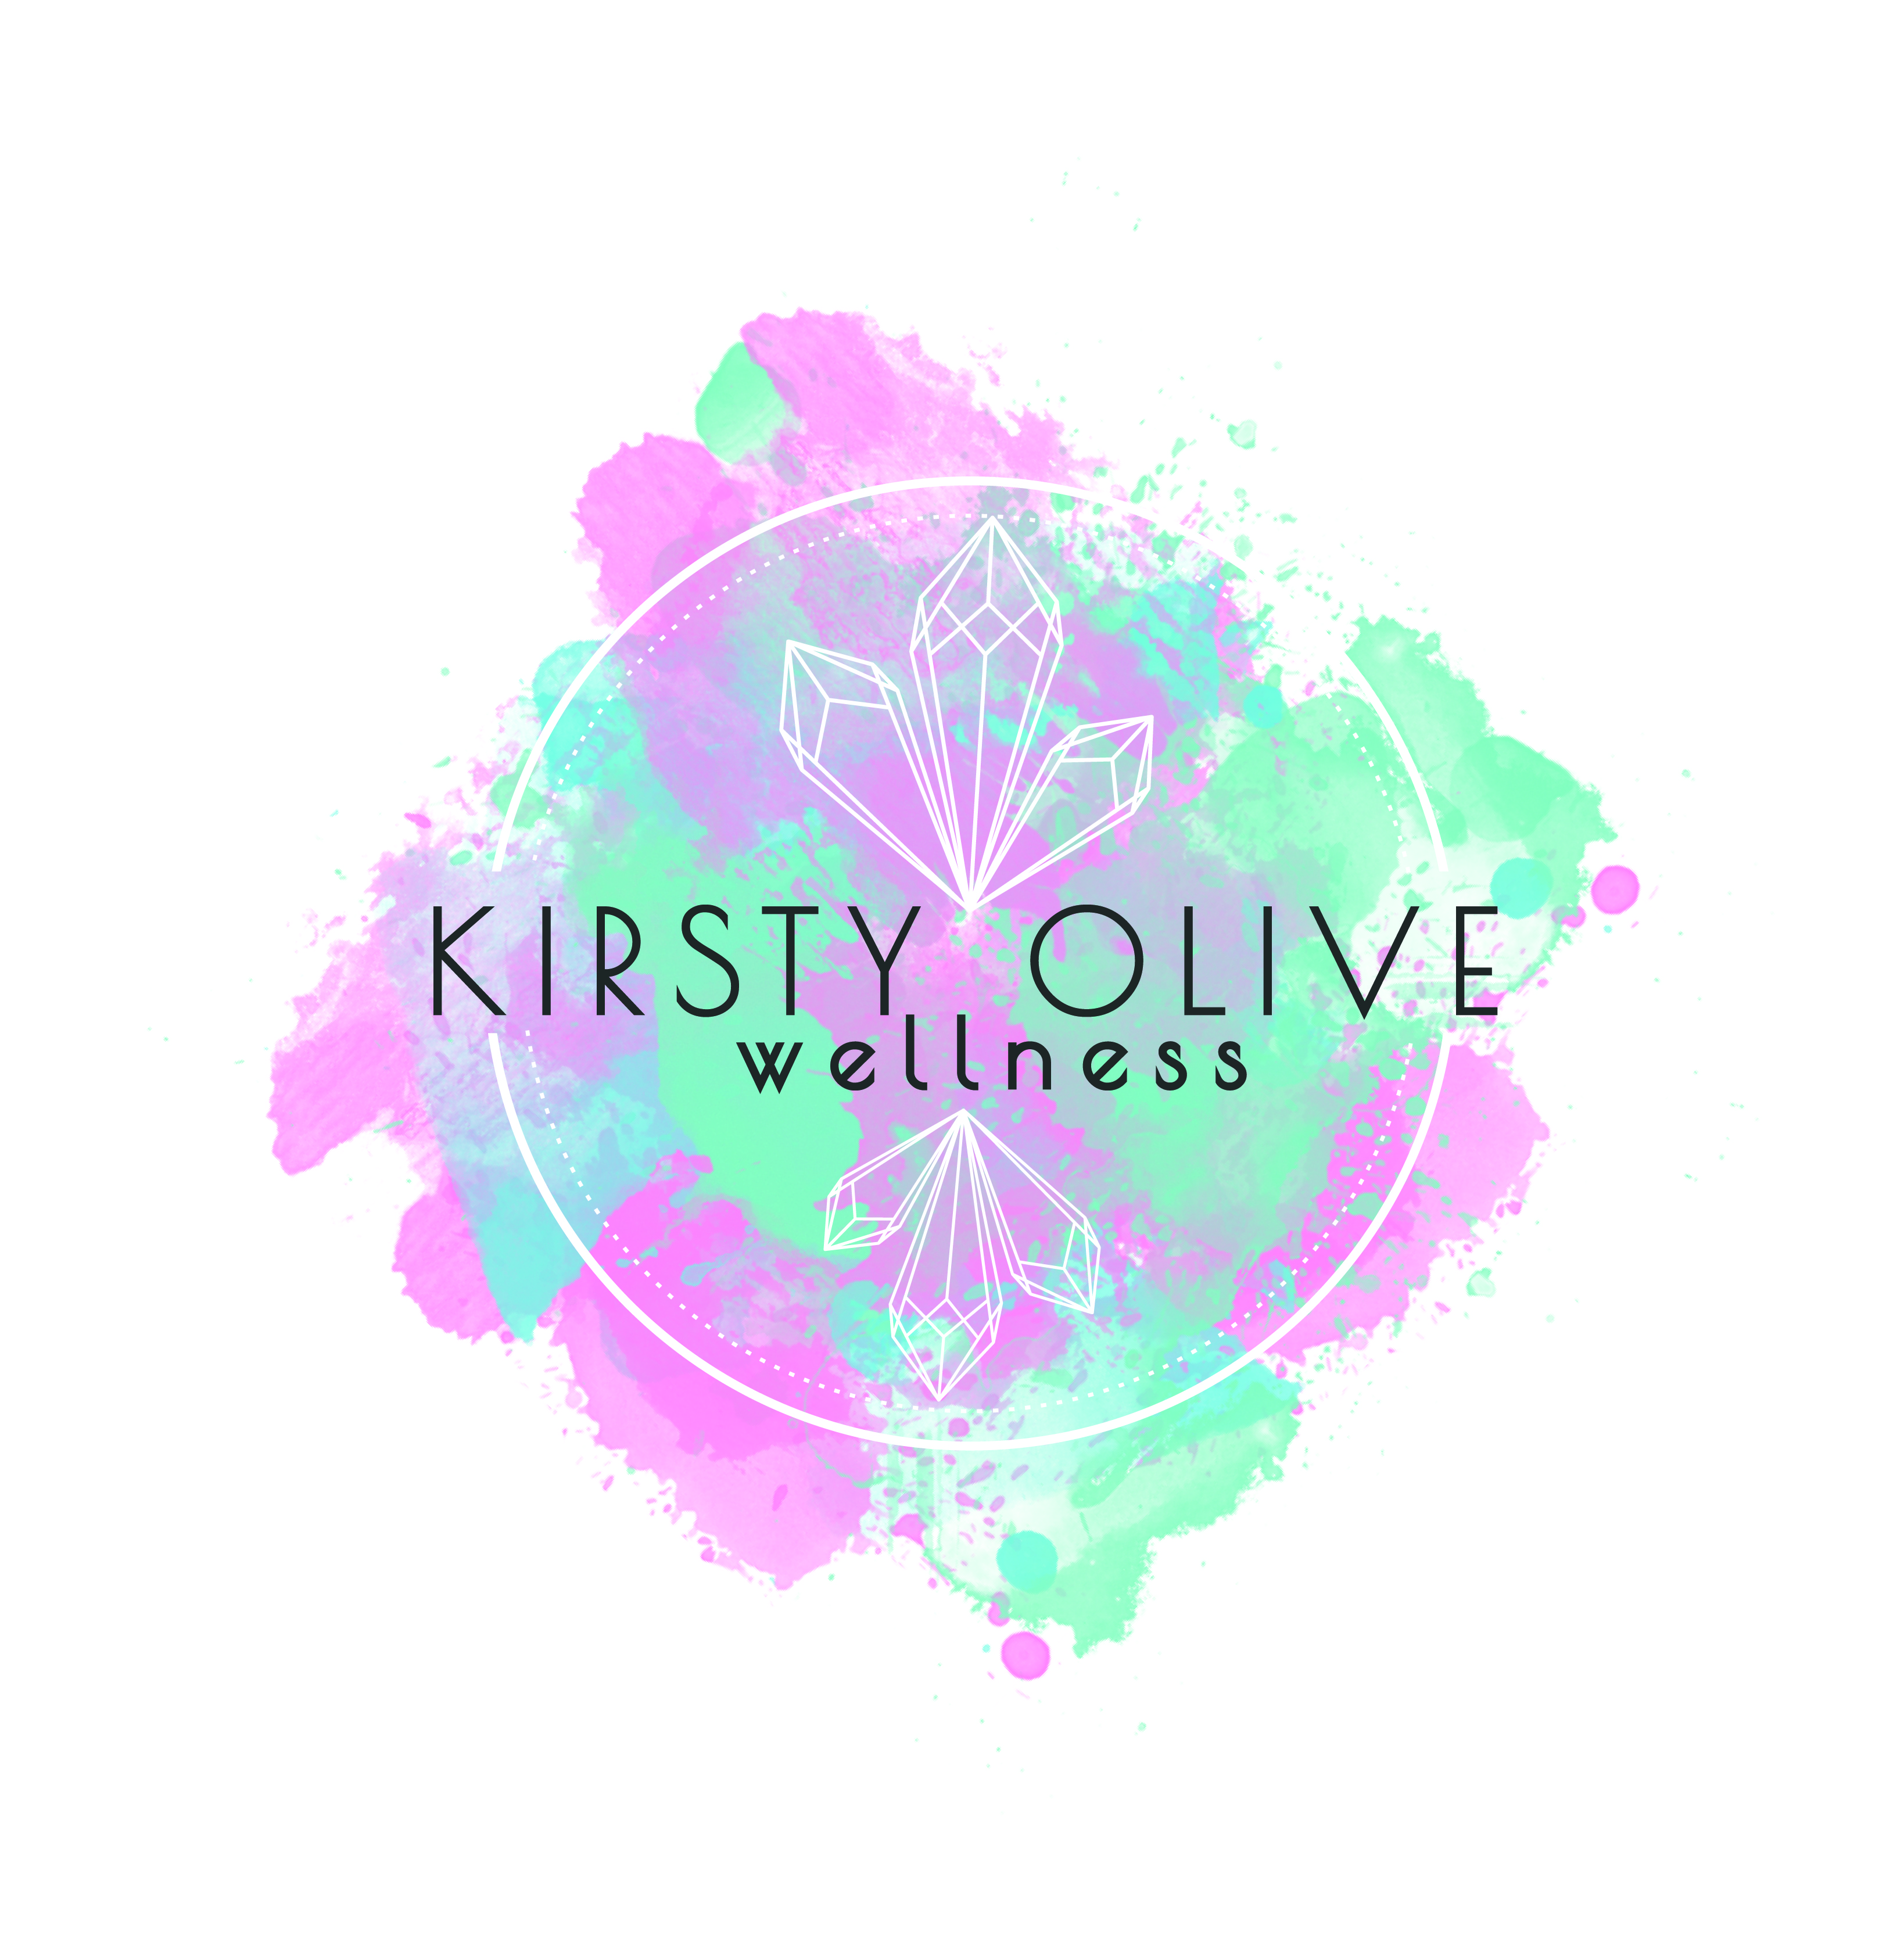 Kirsty Olive